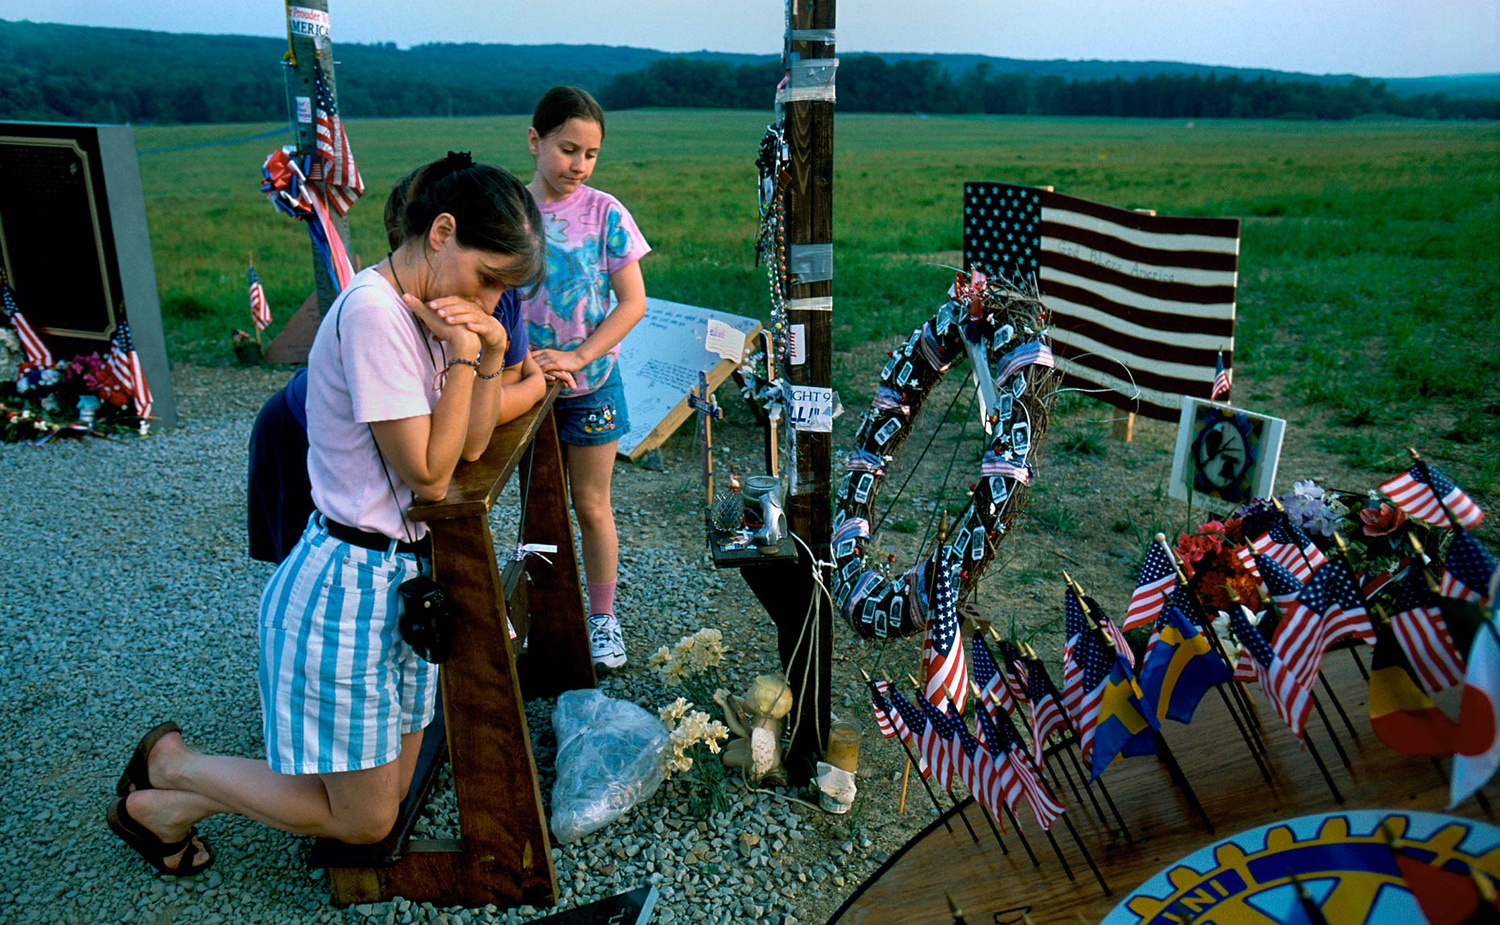 A tourist pauses at the temporary memorial for Flight 93 in Shanksville, Pa.